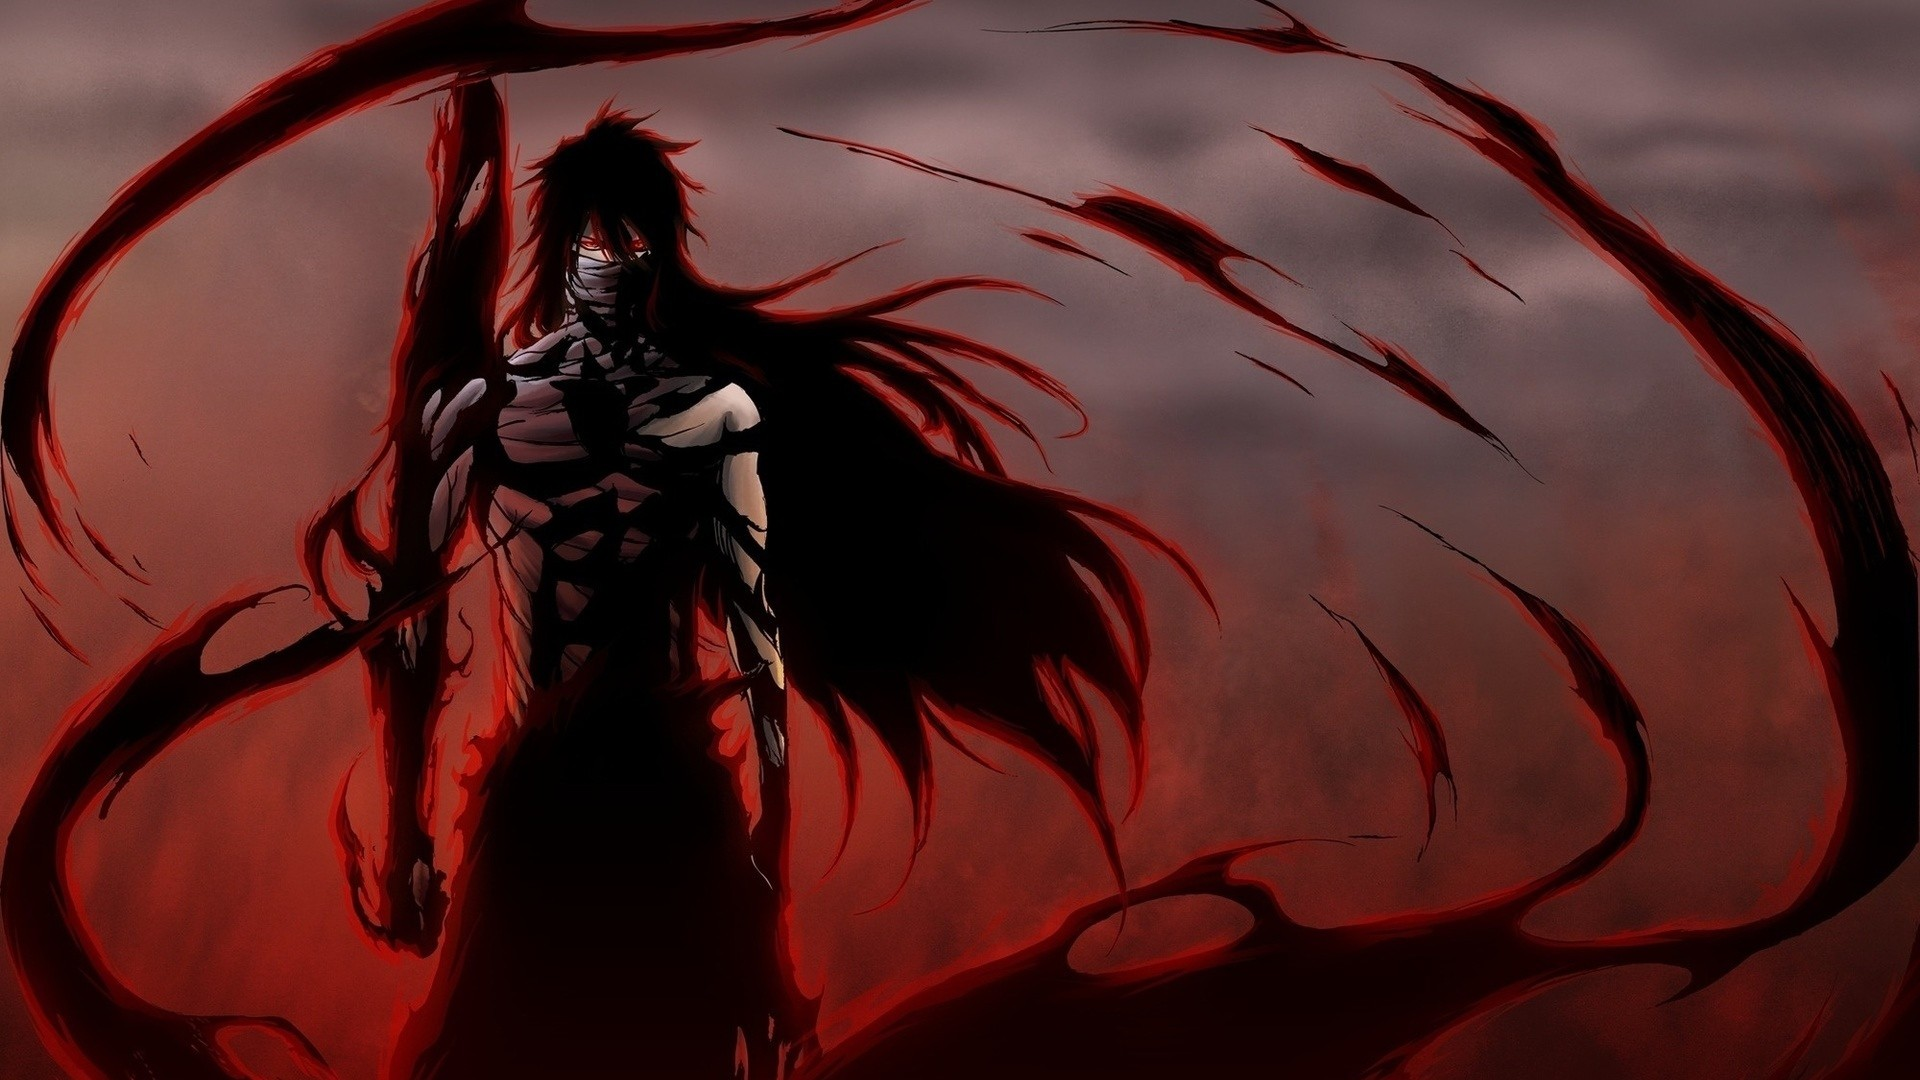 1920x1080 Anime, Bleach, Ichego, Posture, Wind, Background Full HD .